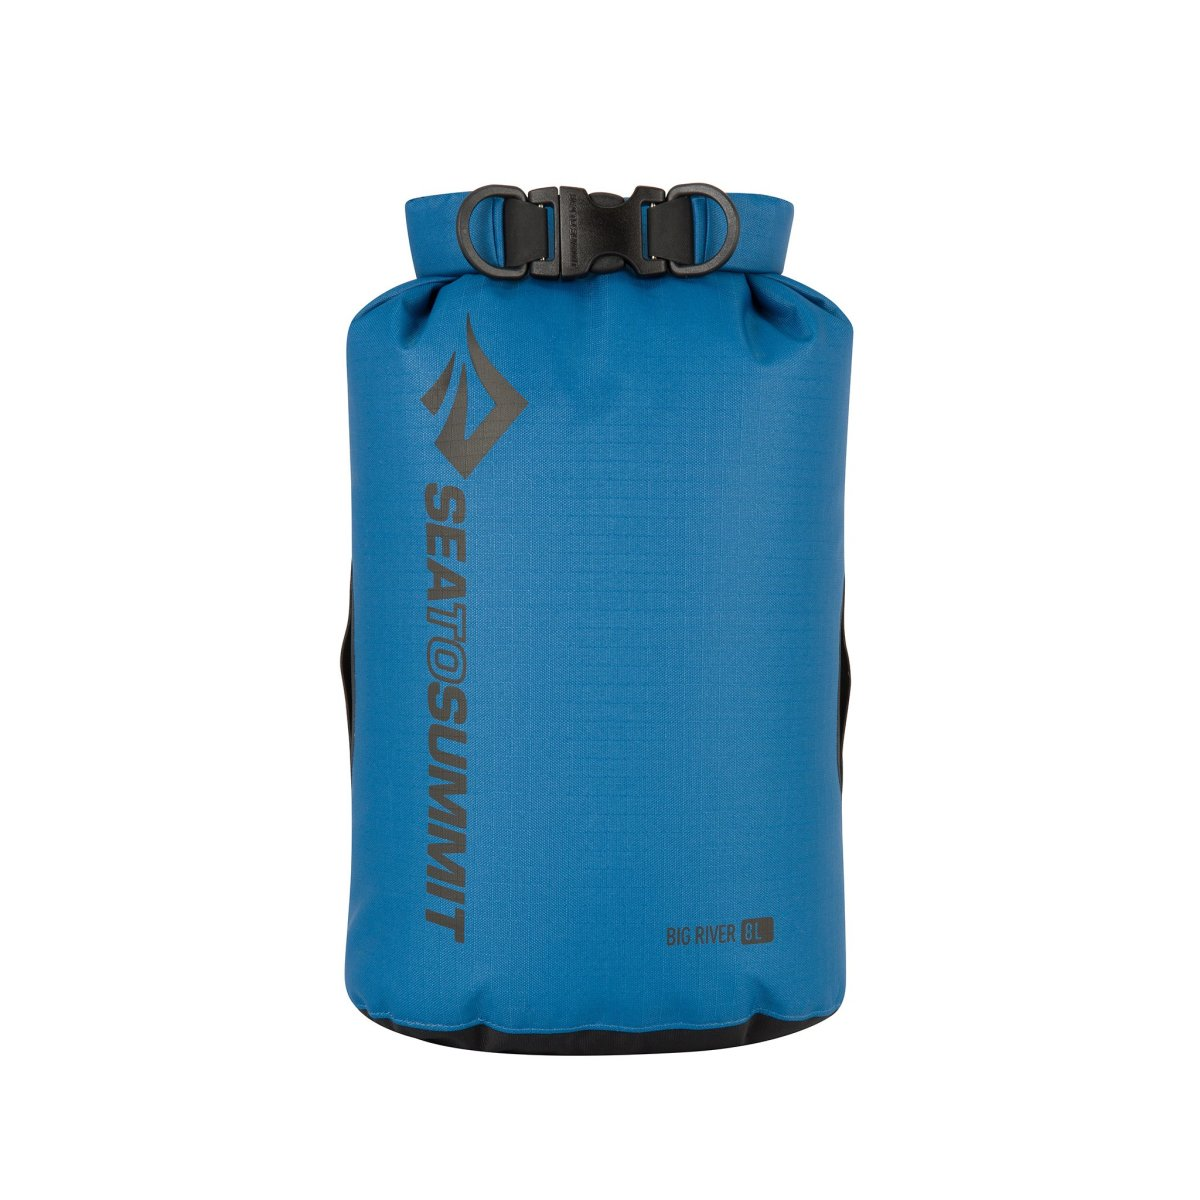 Гермочехол Sea to summit Big River Dry Bag Blue, 8 L STS ABRDB8BL